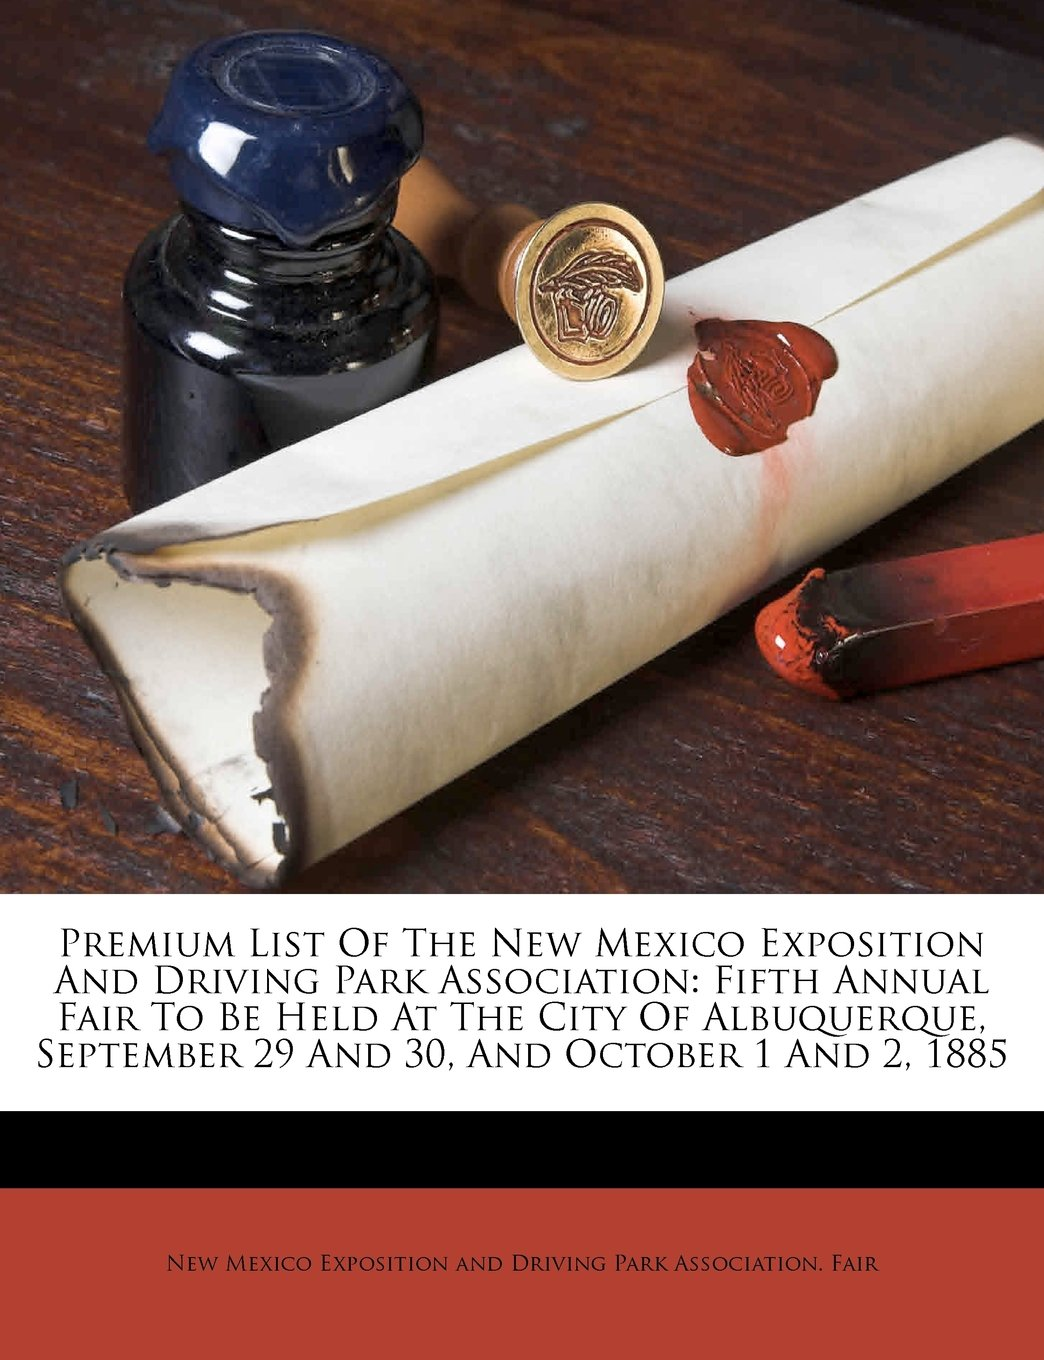 Premium List Of The New Mexico Exposition And Driving Park Association: Fifth Annual Fair To Be Held At The City Of Albuquerque, September 29 And 30, And October 1 And 2, 1885 pdf epub